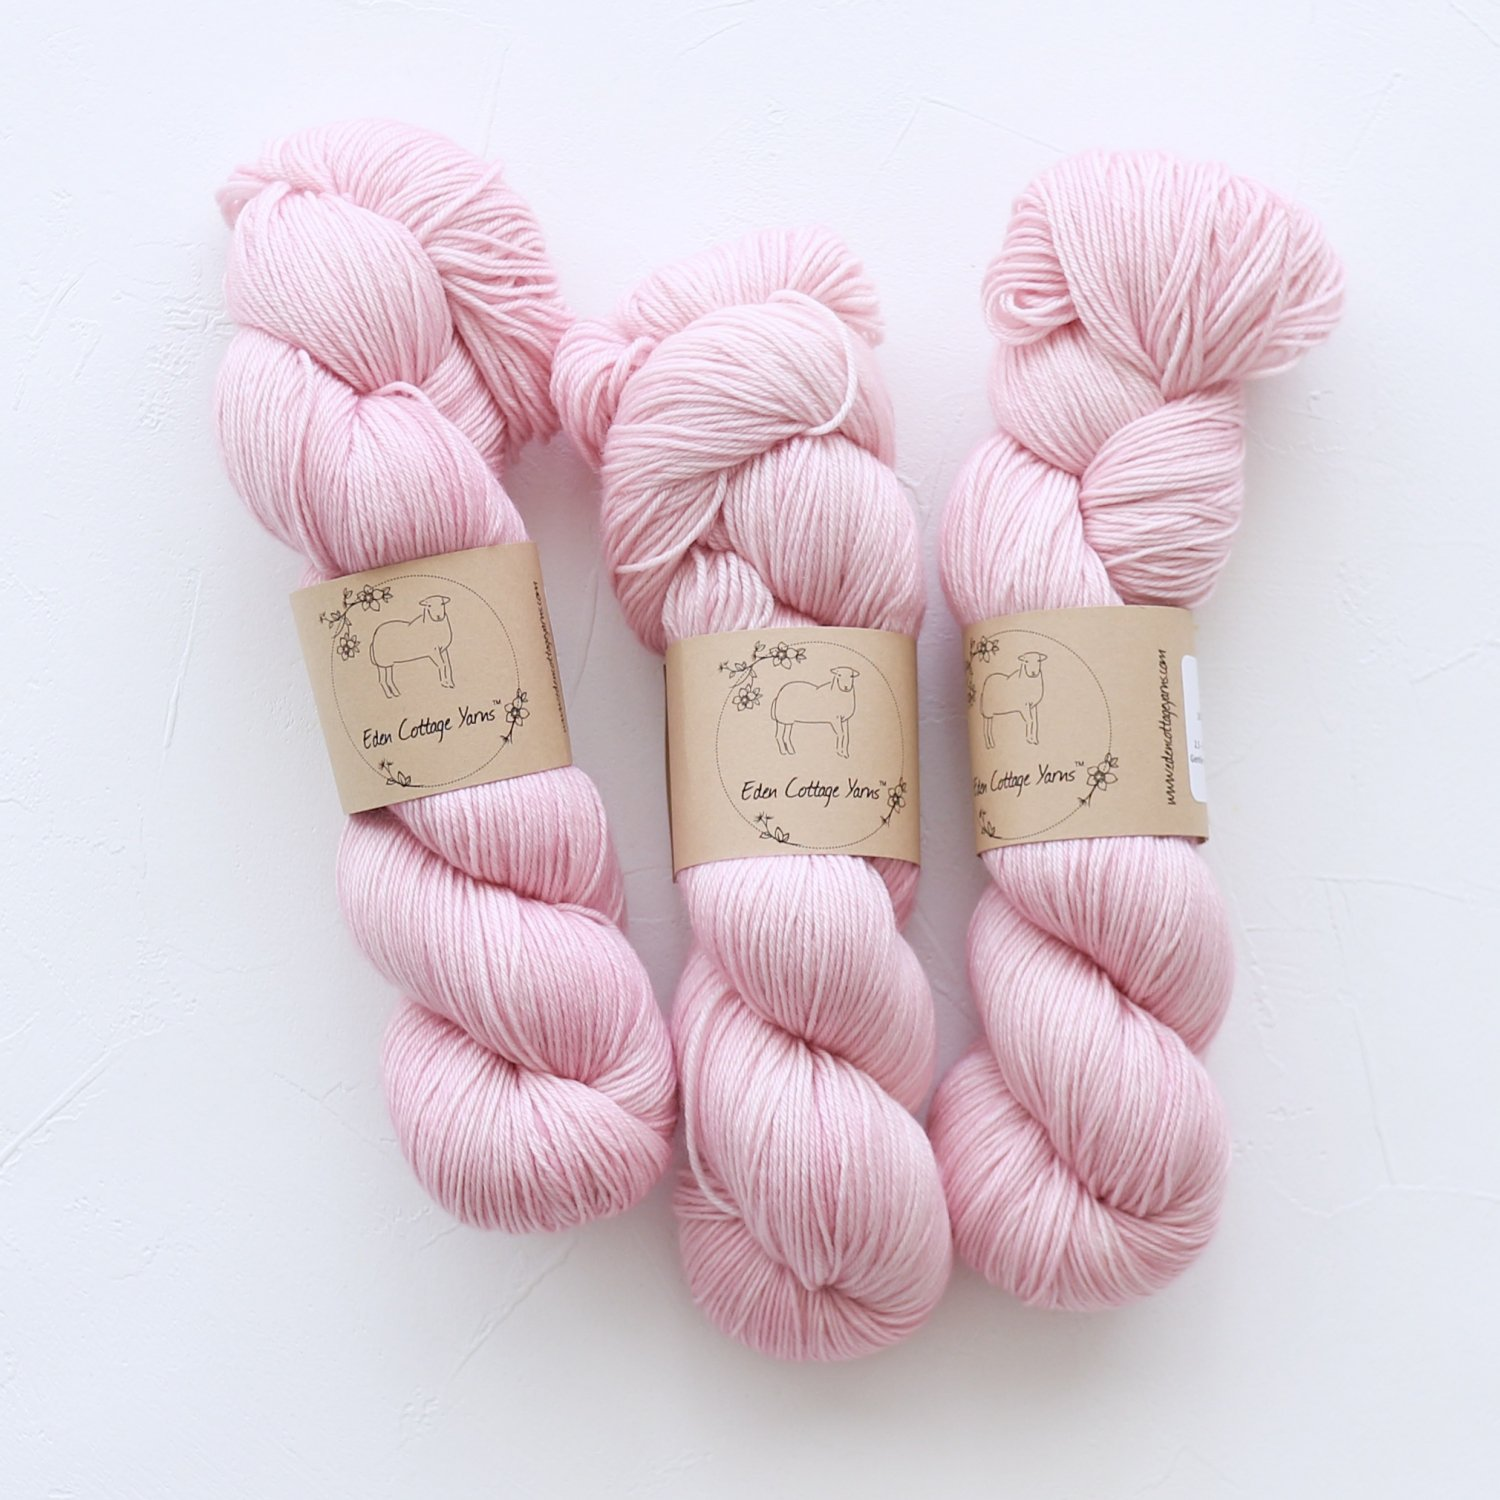 【Eden Cottage Yarns】<br>Pendle 4ply<br>Blossom